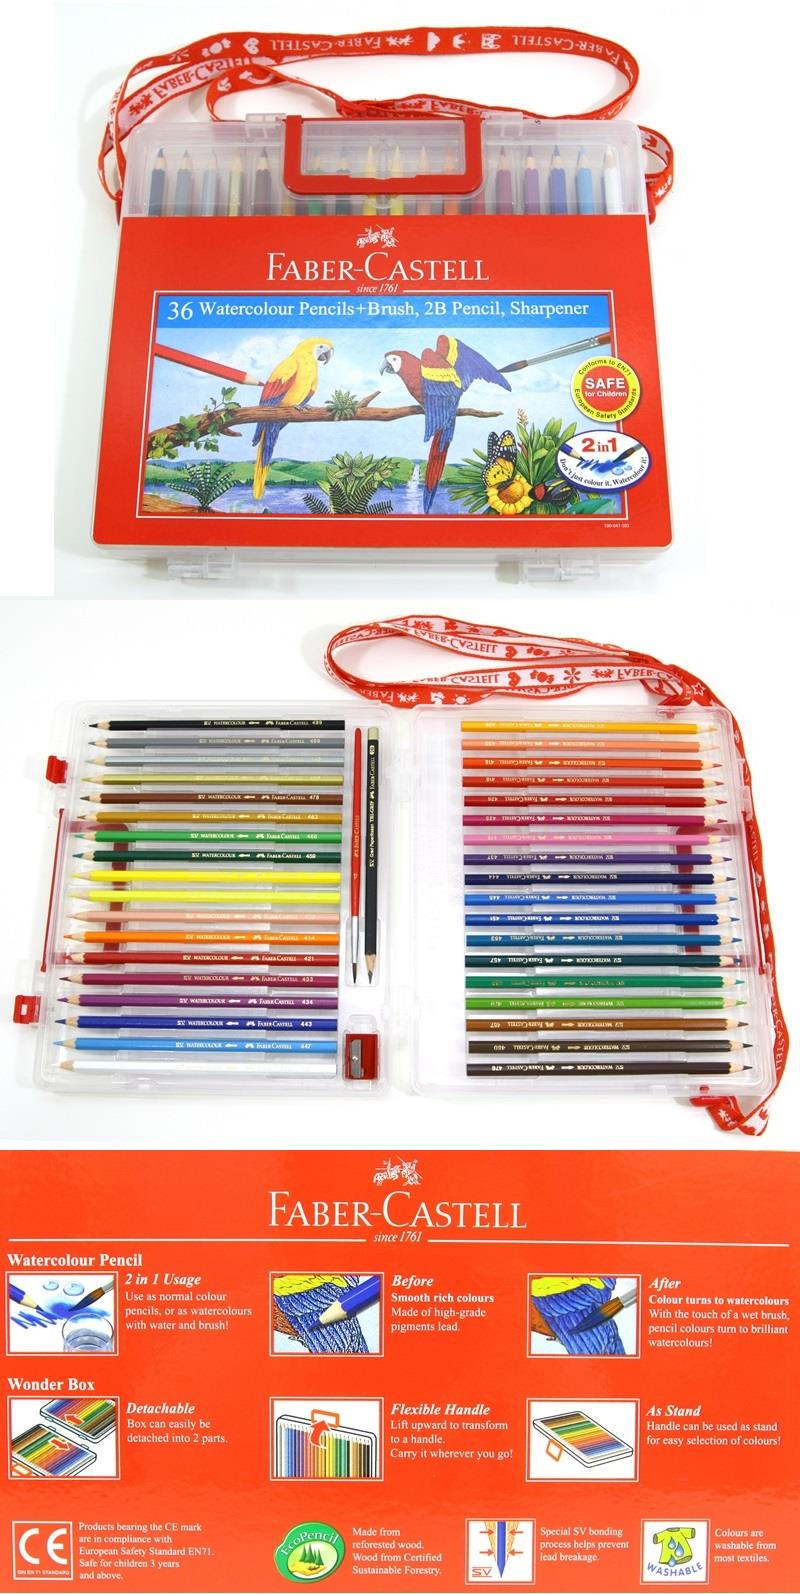 Faber-Castell Watercolour Pencils 36 L in Wonder Box